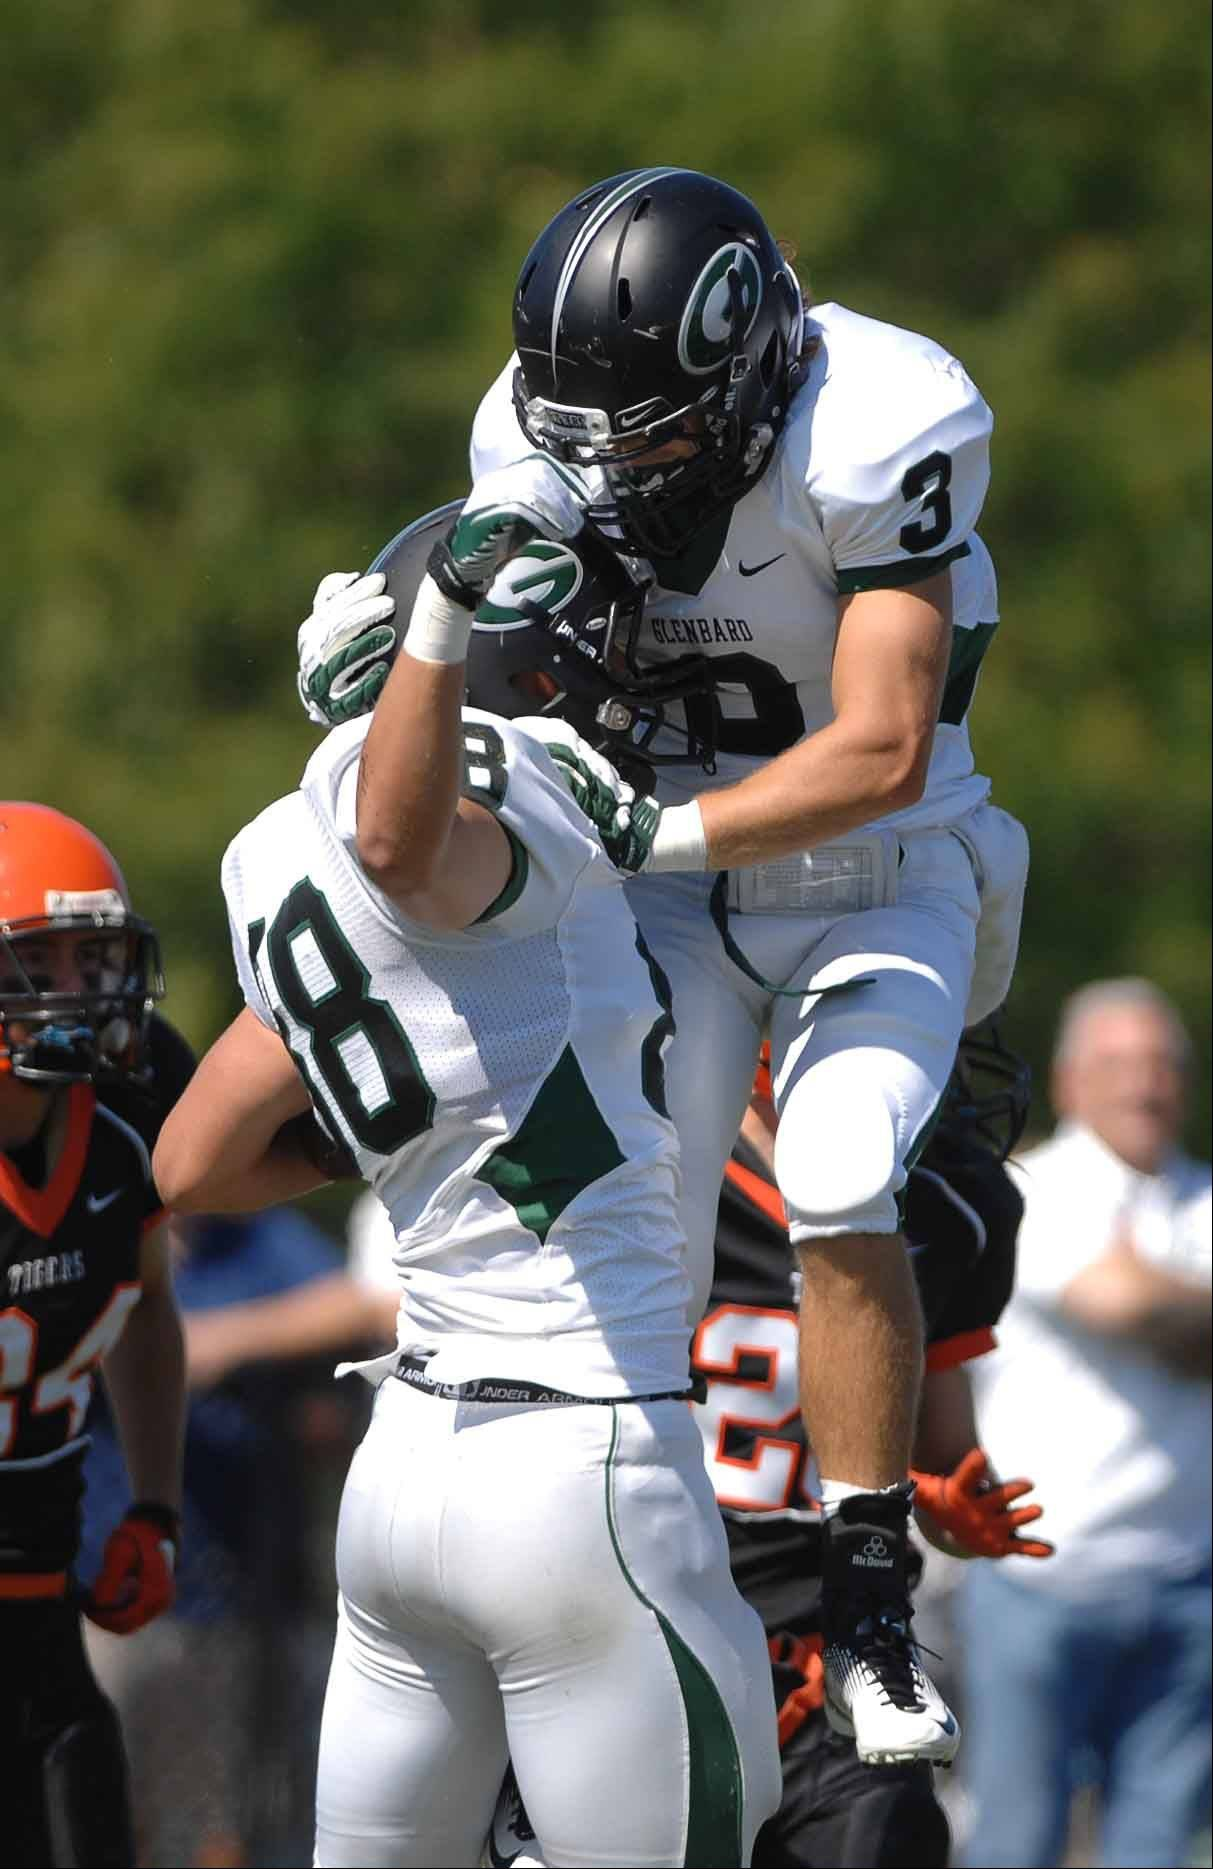 Max Bruere, left, and Avery Balogh of Glen Ellyn celebrate after a TD at Red Grange Field.